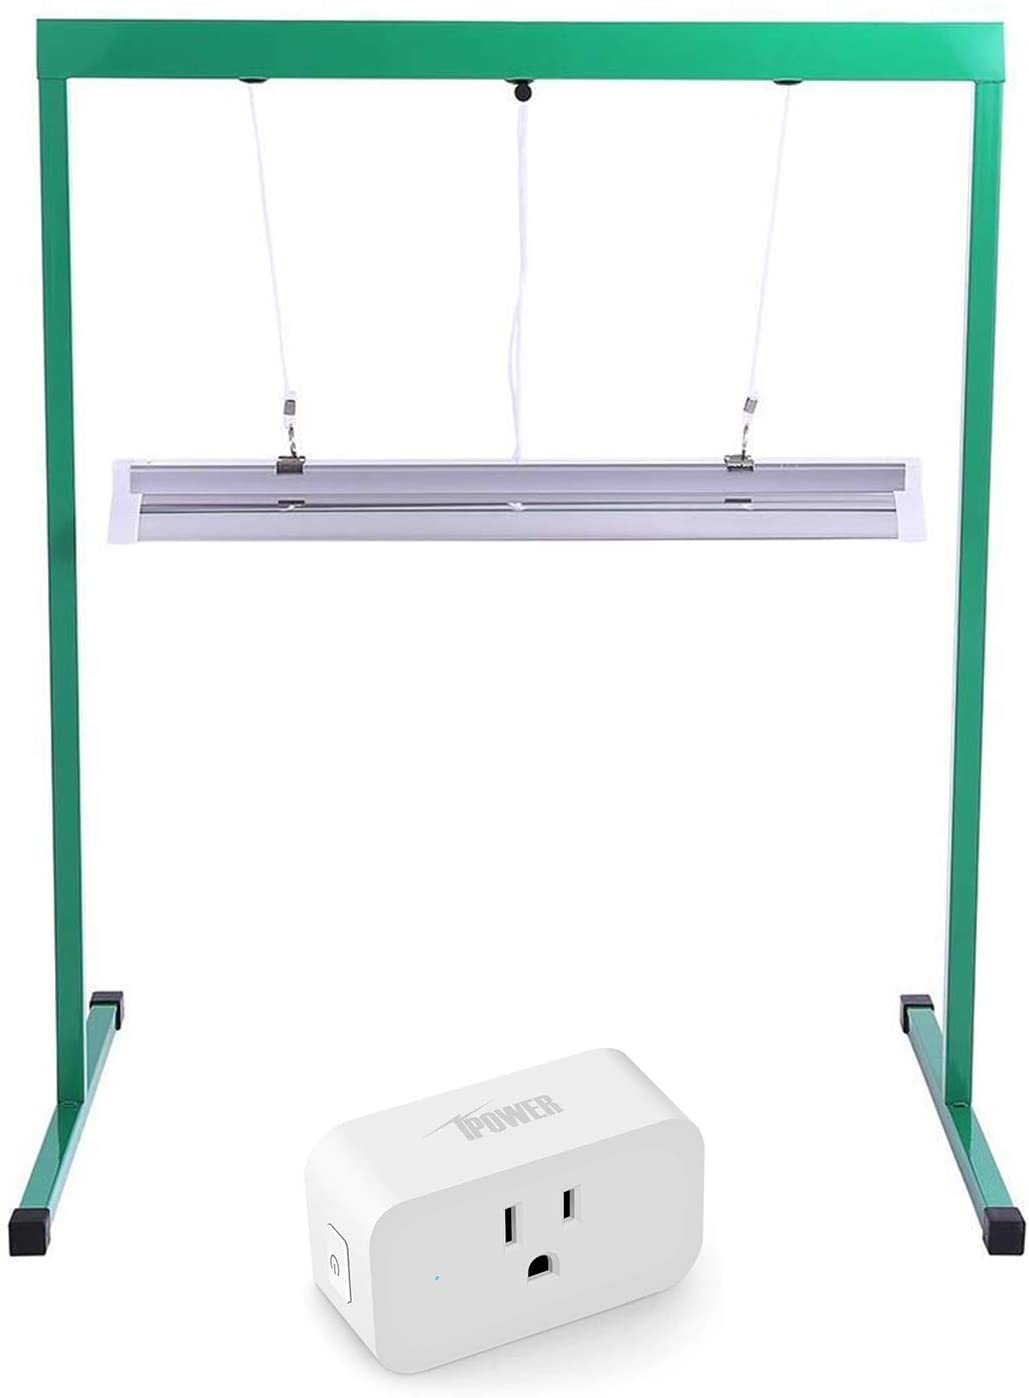 iPower GLT5XX2TIMESMART15 24W 2 Feet T5 Fluorescent Light Stand Rack for Seed Starting Plant Growing, 6400K Smart Plug Socket Homekit Mini WiFi Outlet Extender Switches, Timer, Green+White